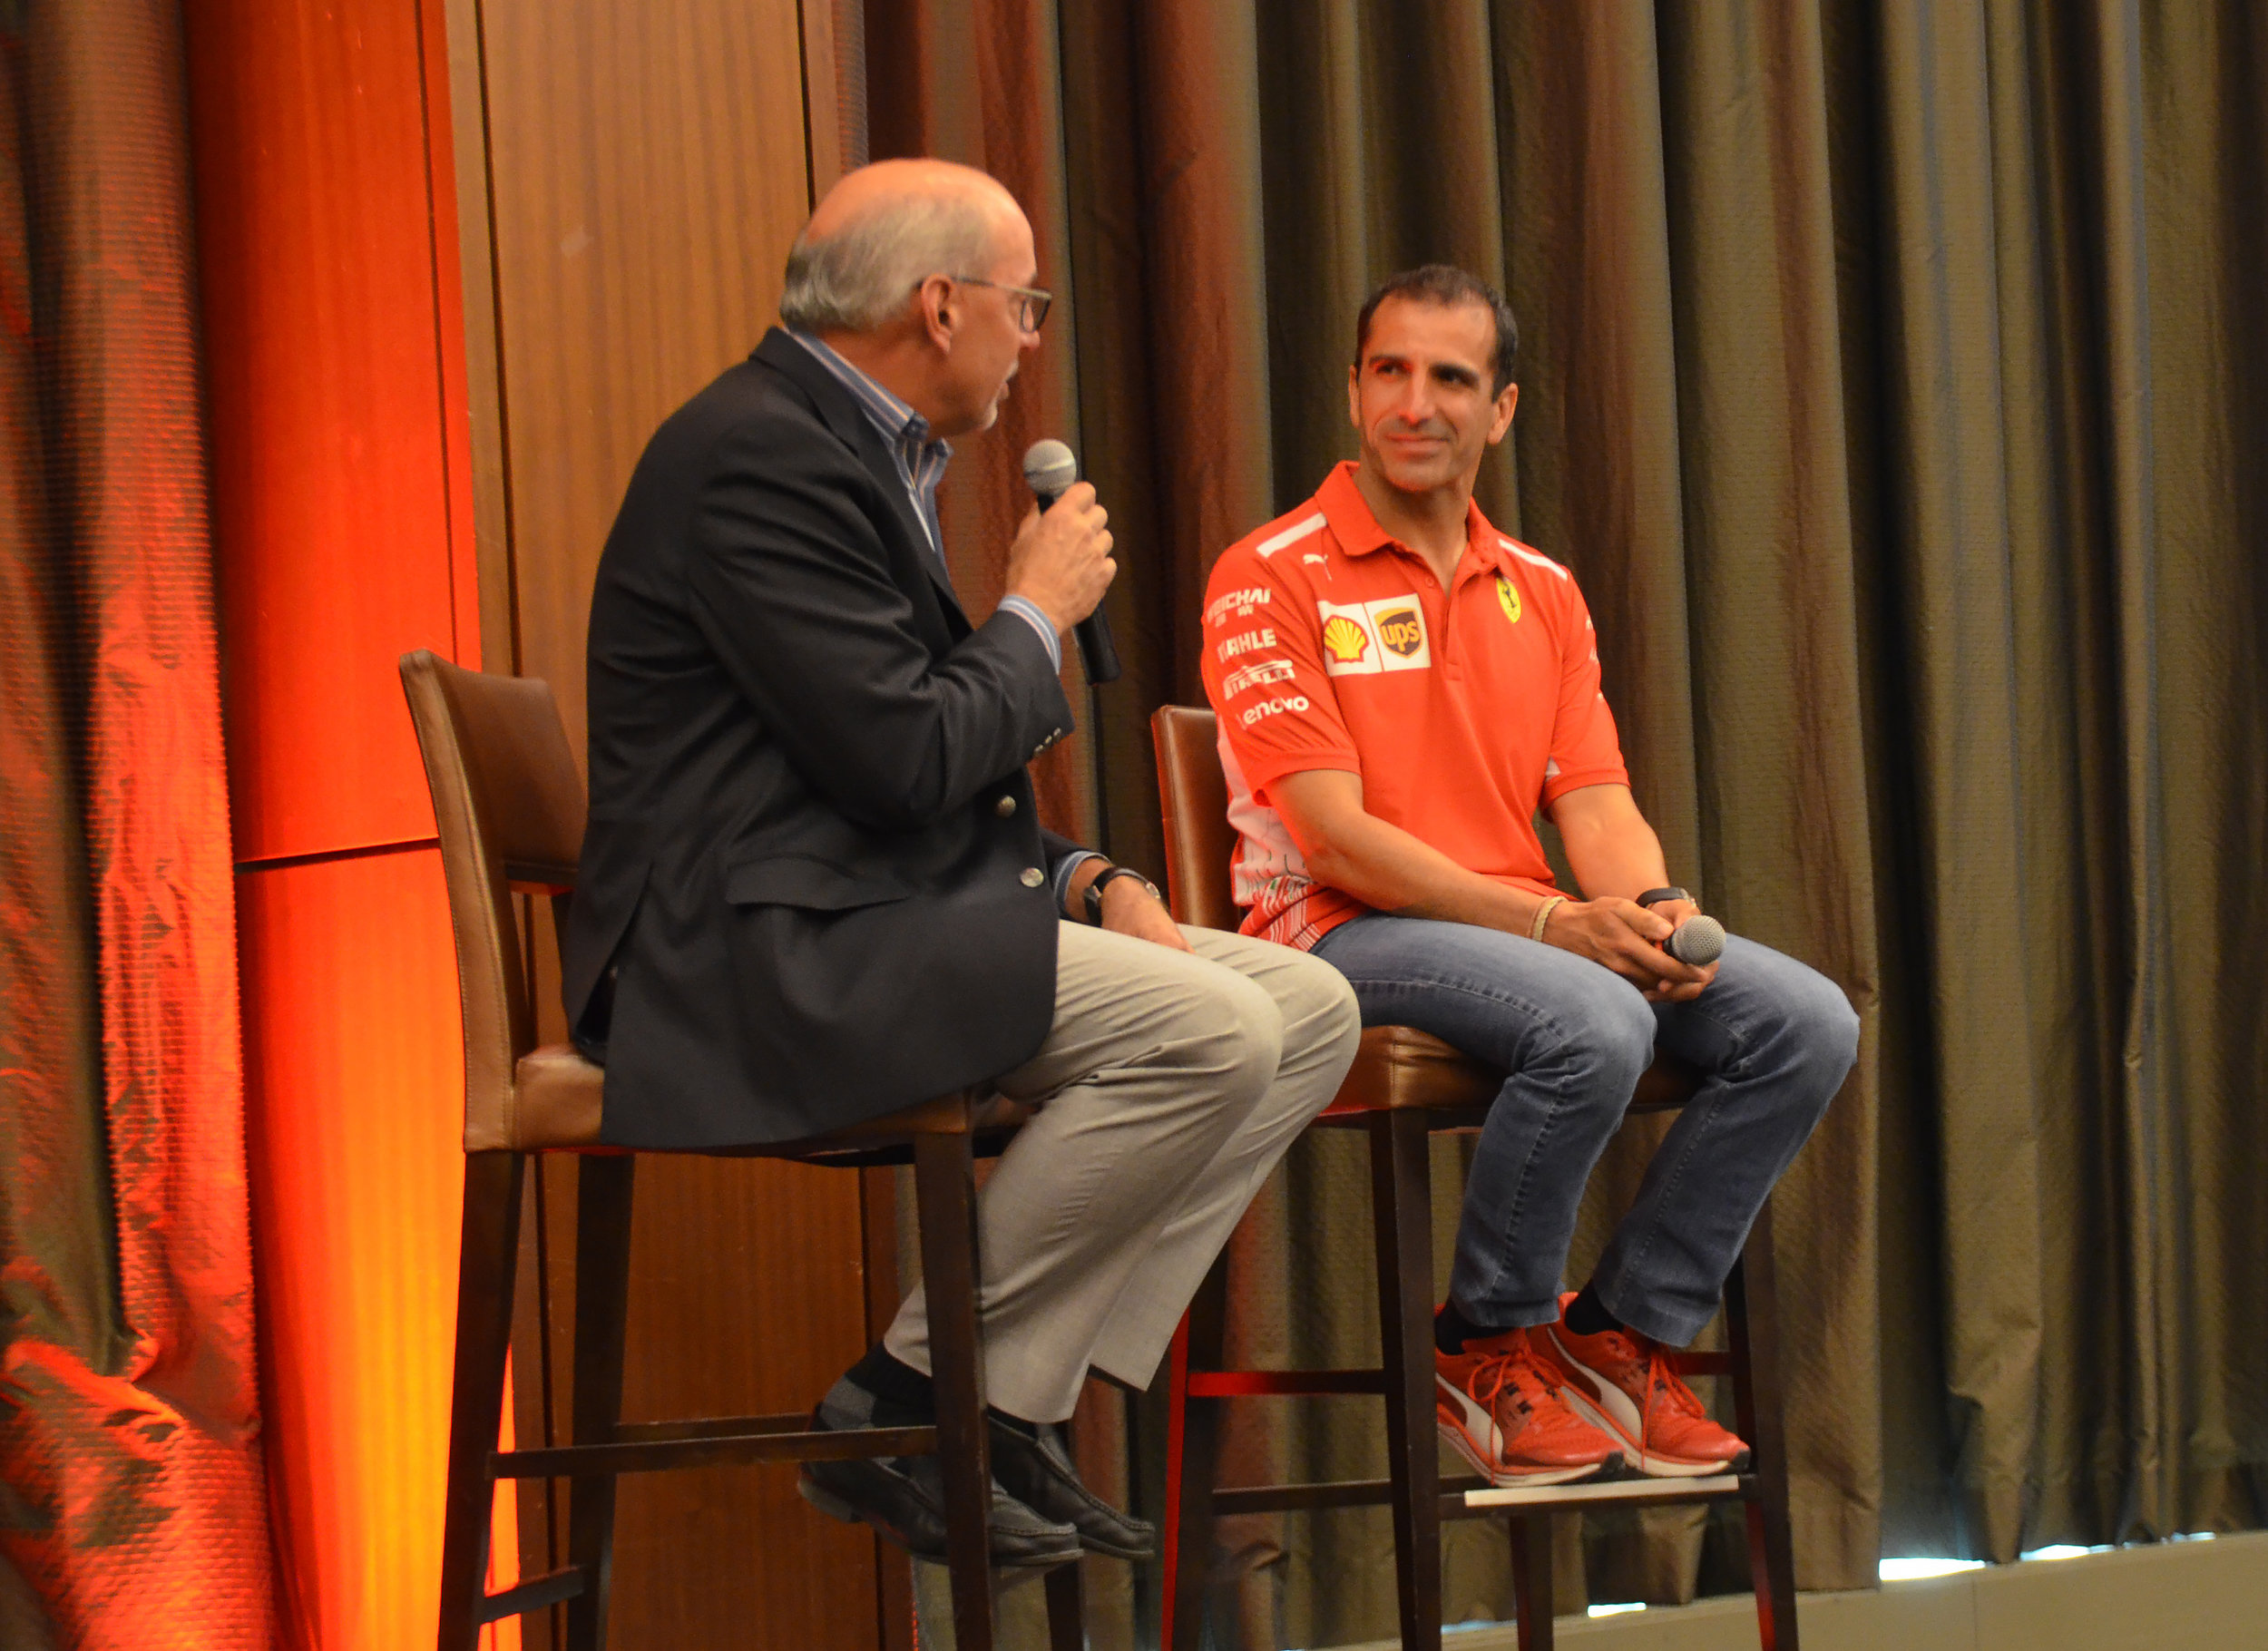 Ron Schneider interviews Ferrari development driver, Marc Gené. Guests got a chance to learn more about the significance of the technical partnership between Shell and Ferrari.